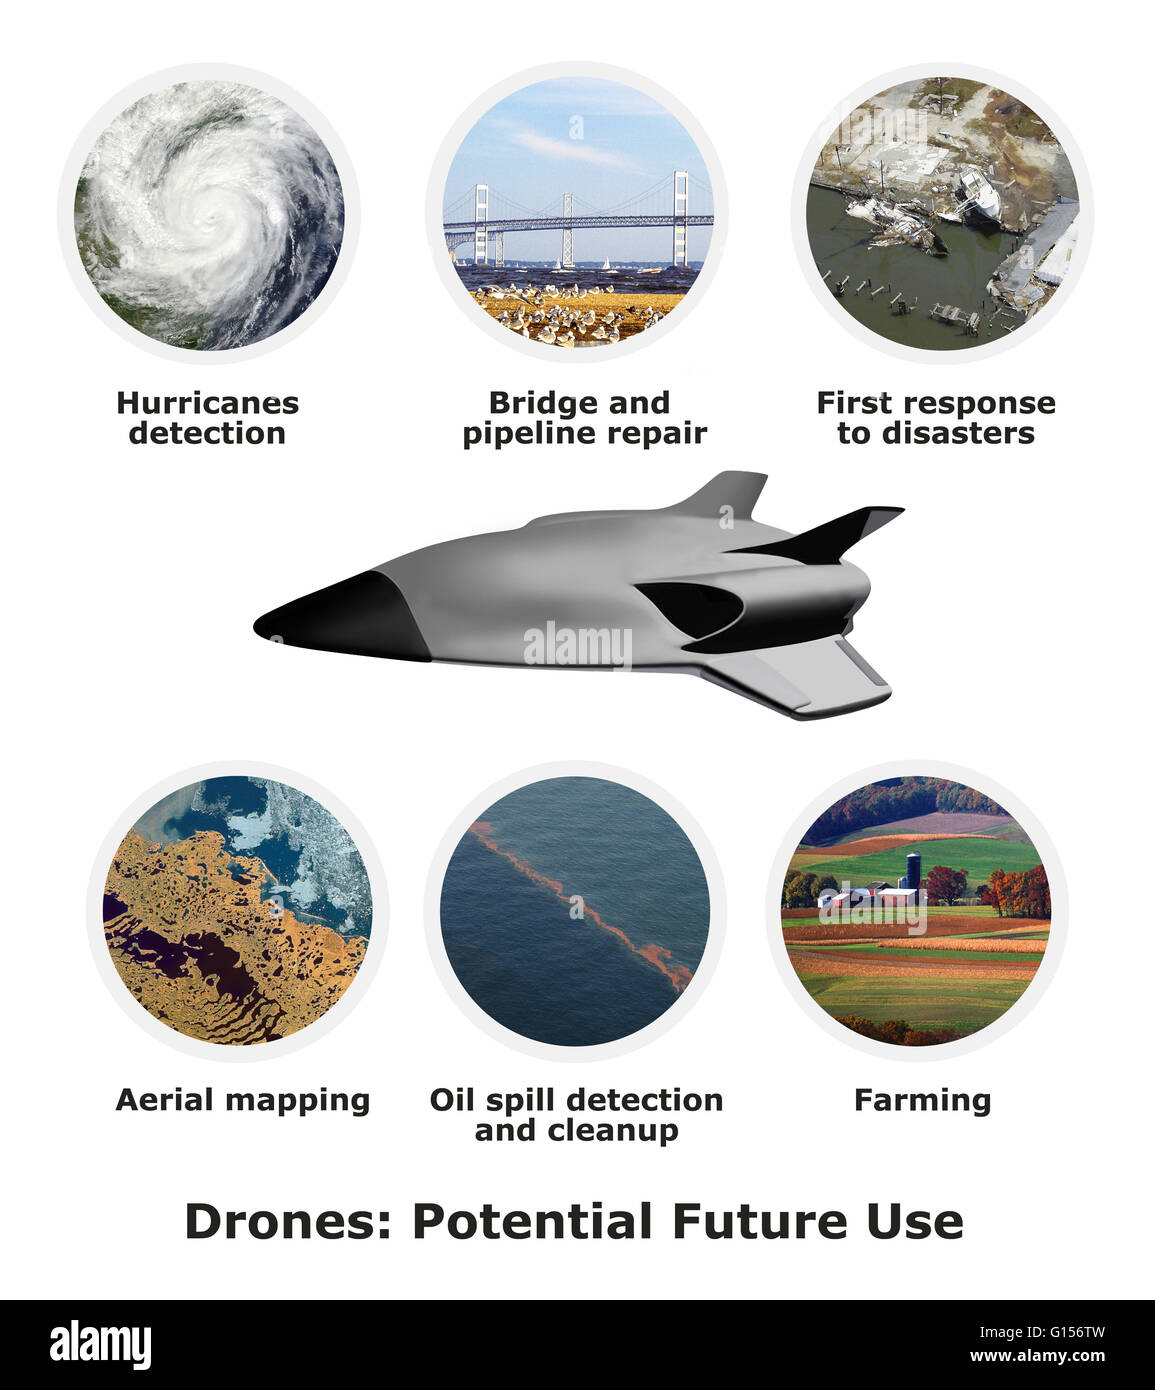 Illustration showing the potential benefits of drone usage in the future. - Stock Image